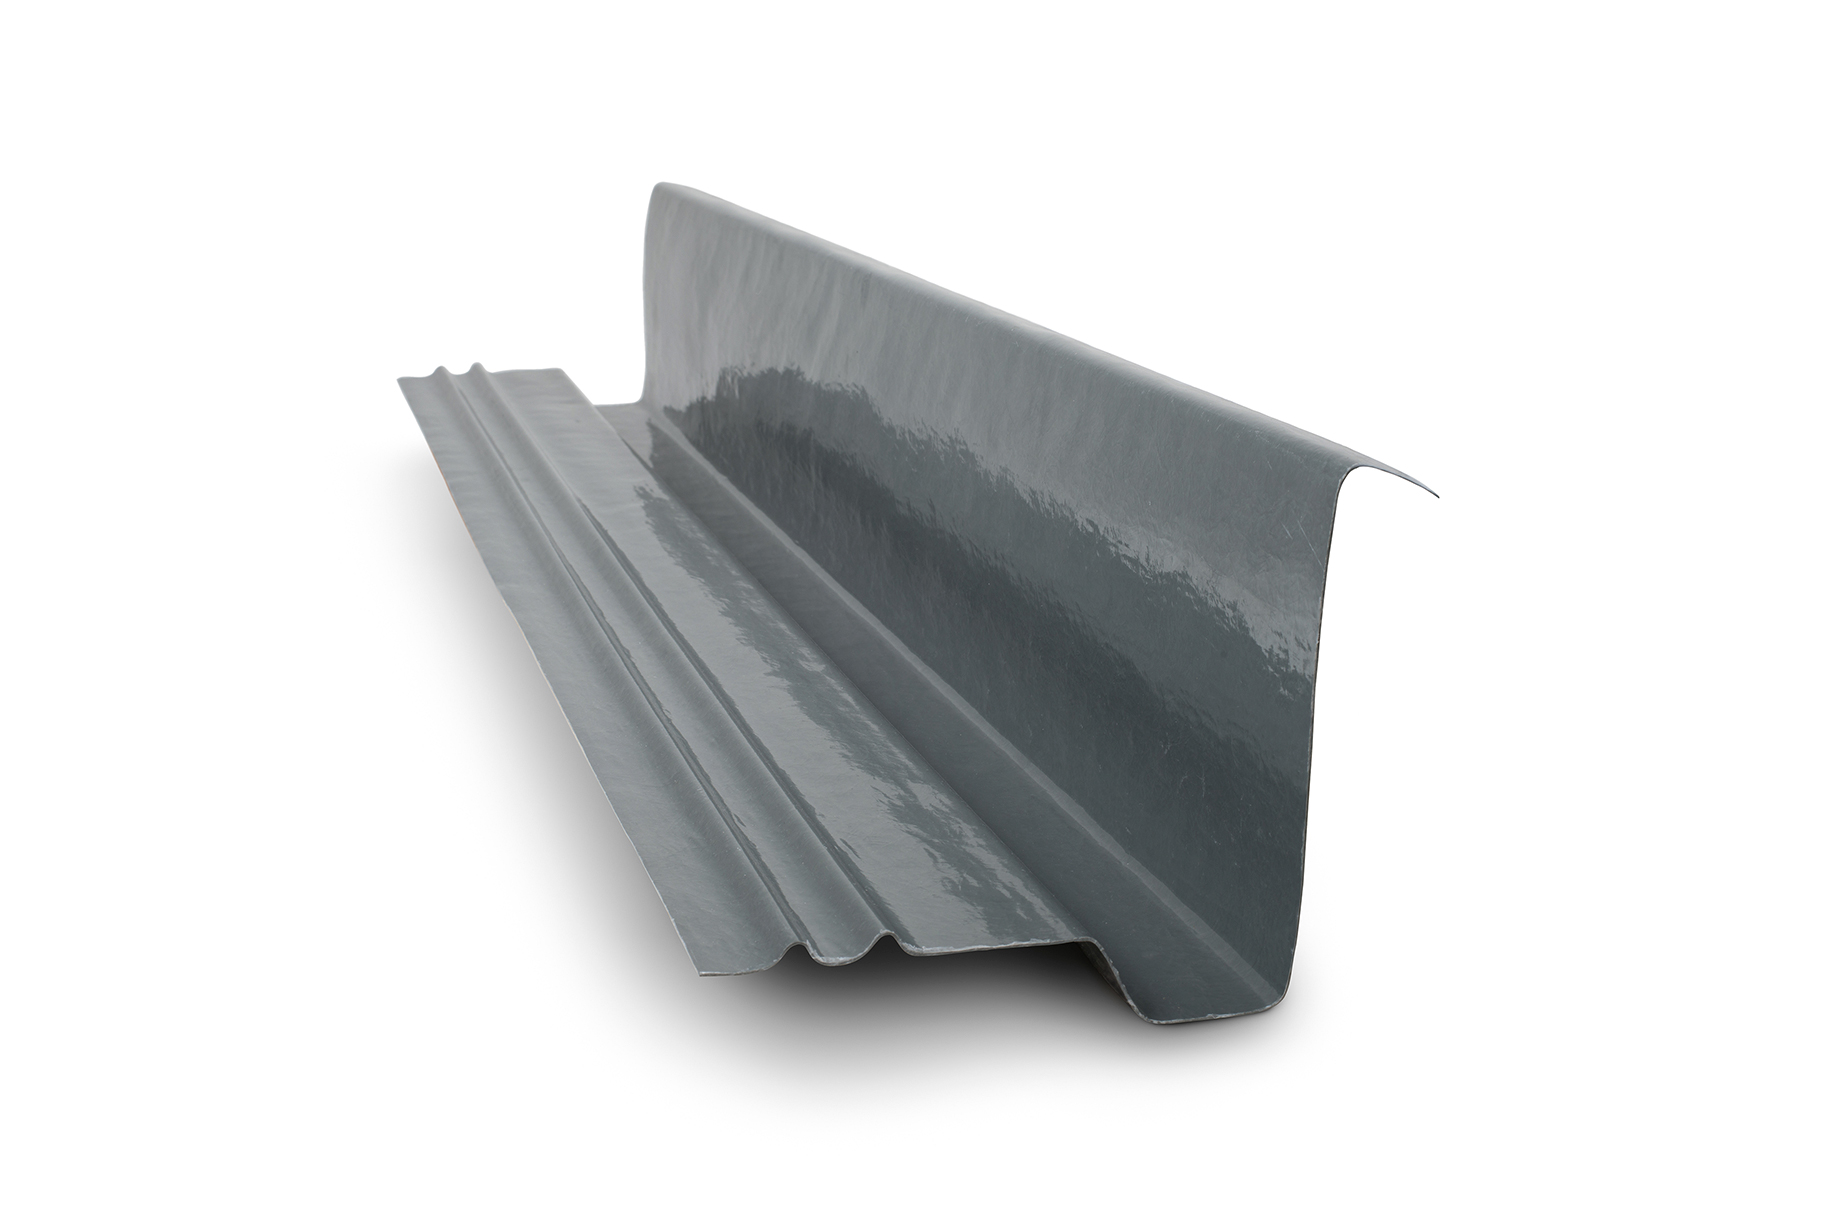 Stand alone photo of the GRP Continuous Soaker for Slates With Lip